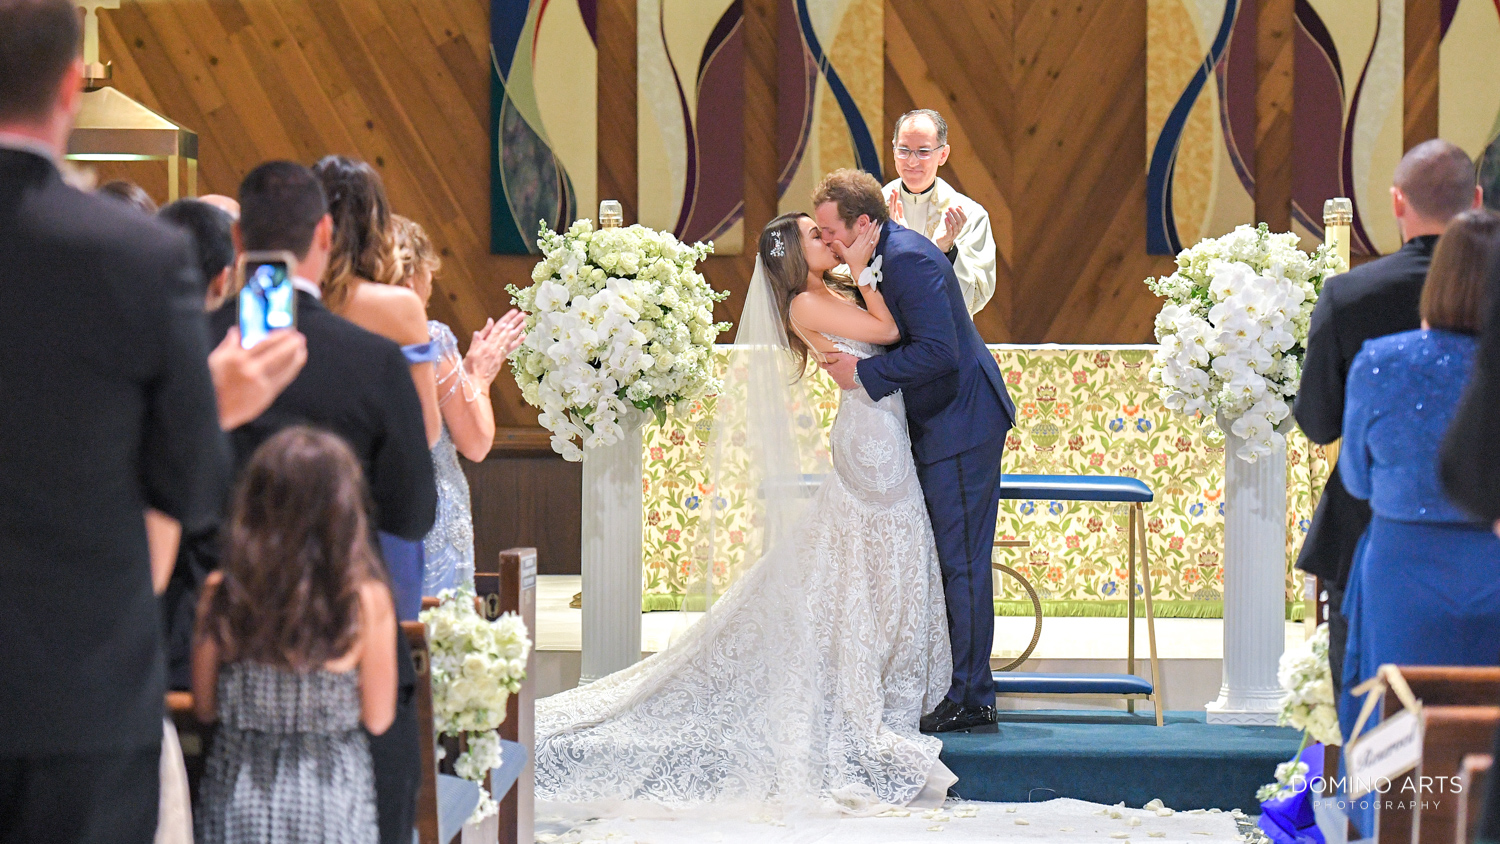 Wedding ceremony at Ascension Catholic Church